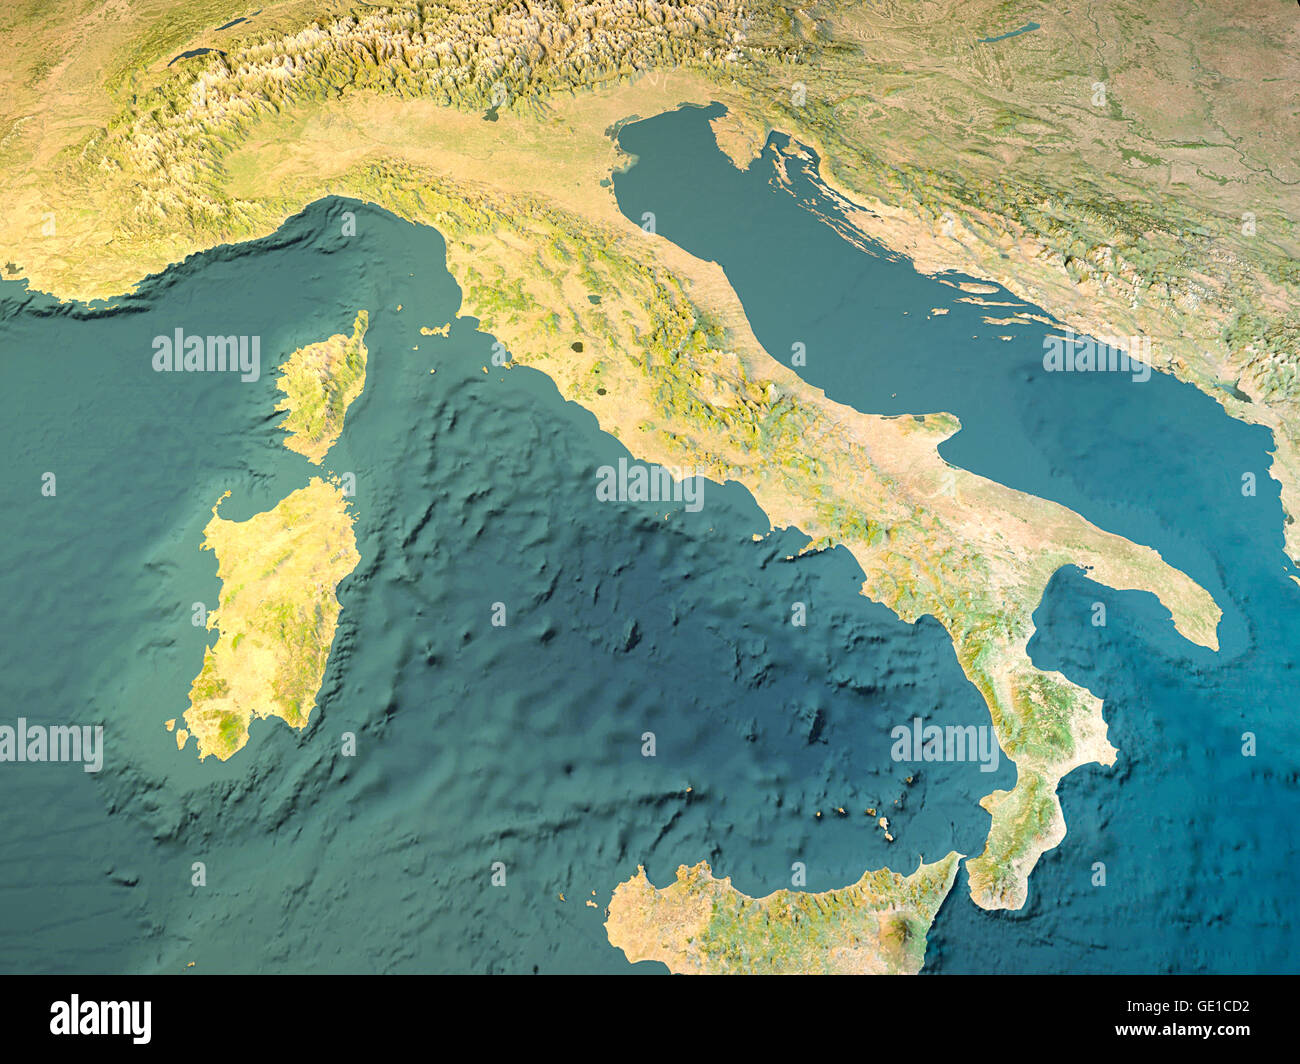 Italy Physical Map Satellite View Map D Rendering Stock Photo - Map of italy physical